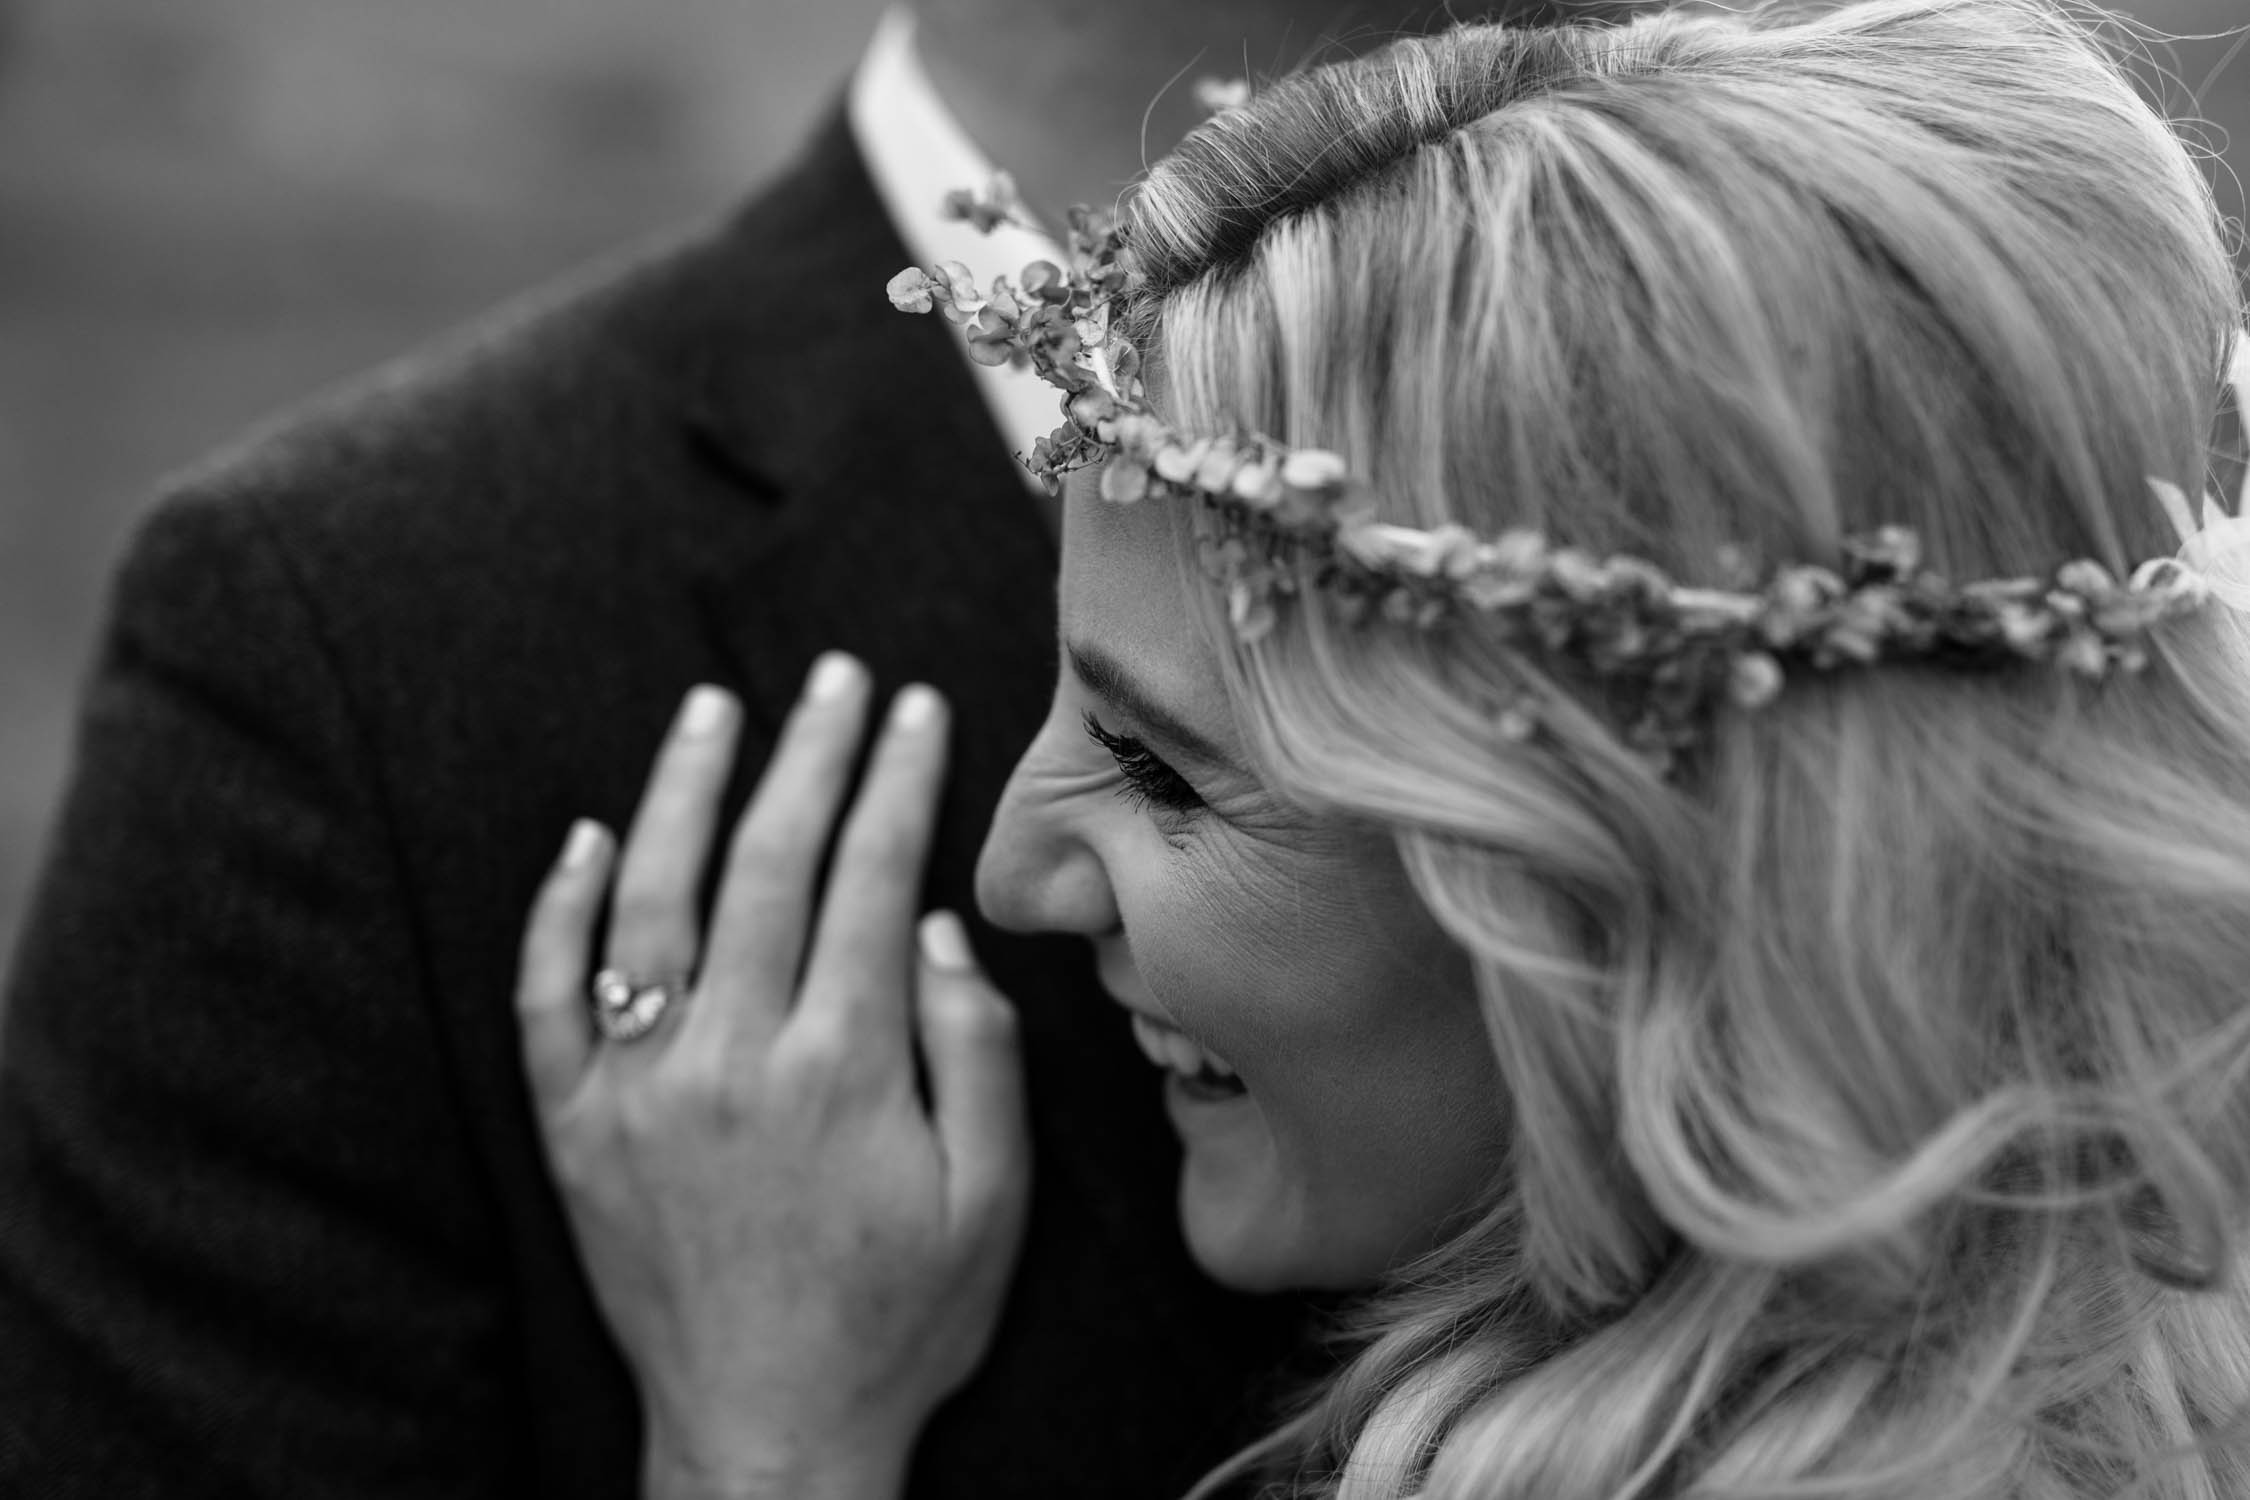 Candid close up moment of bride laughing wearing a flower crown made from dried flowers. Bride and groom surrounded by green hills and fields at a farm wedding venue in the Natal Midlands.